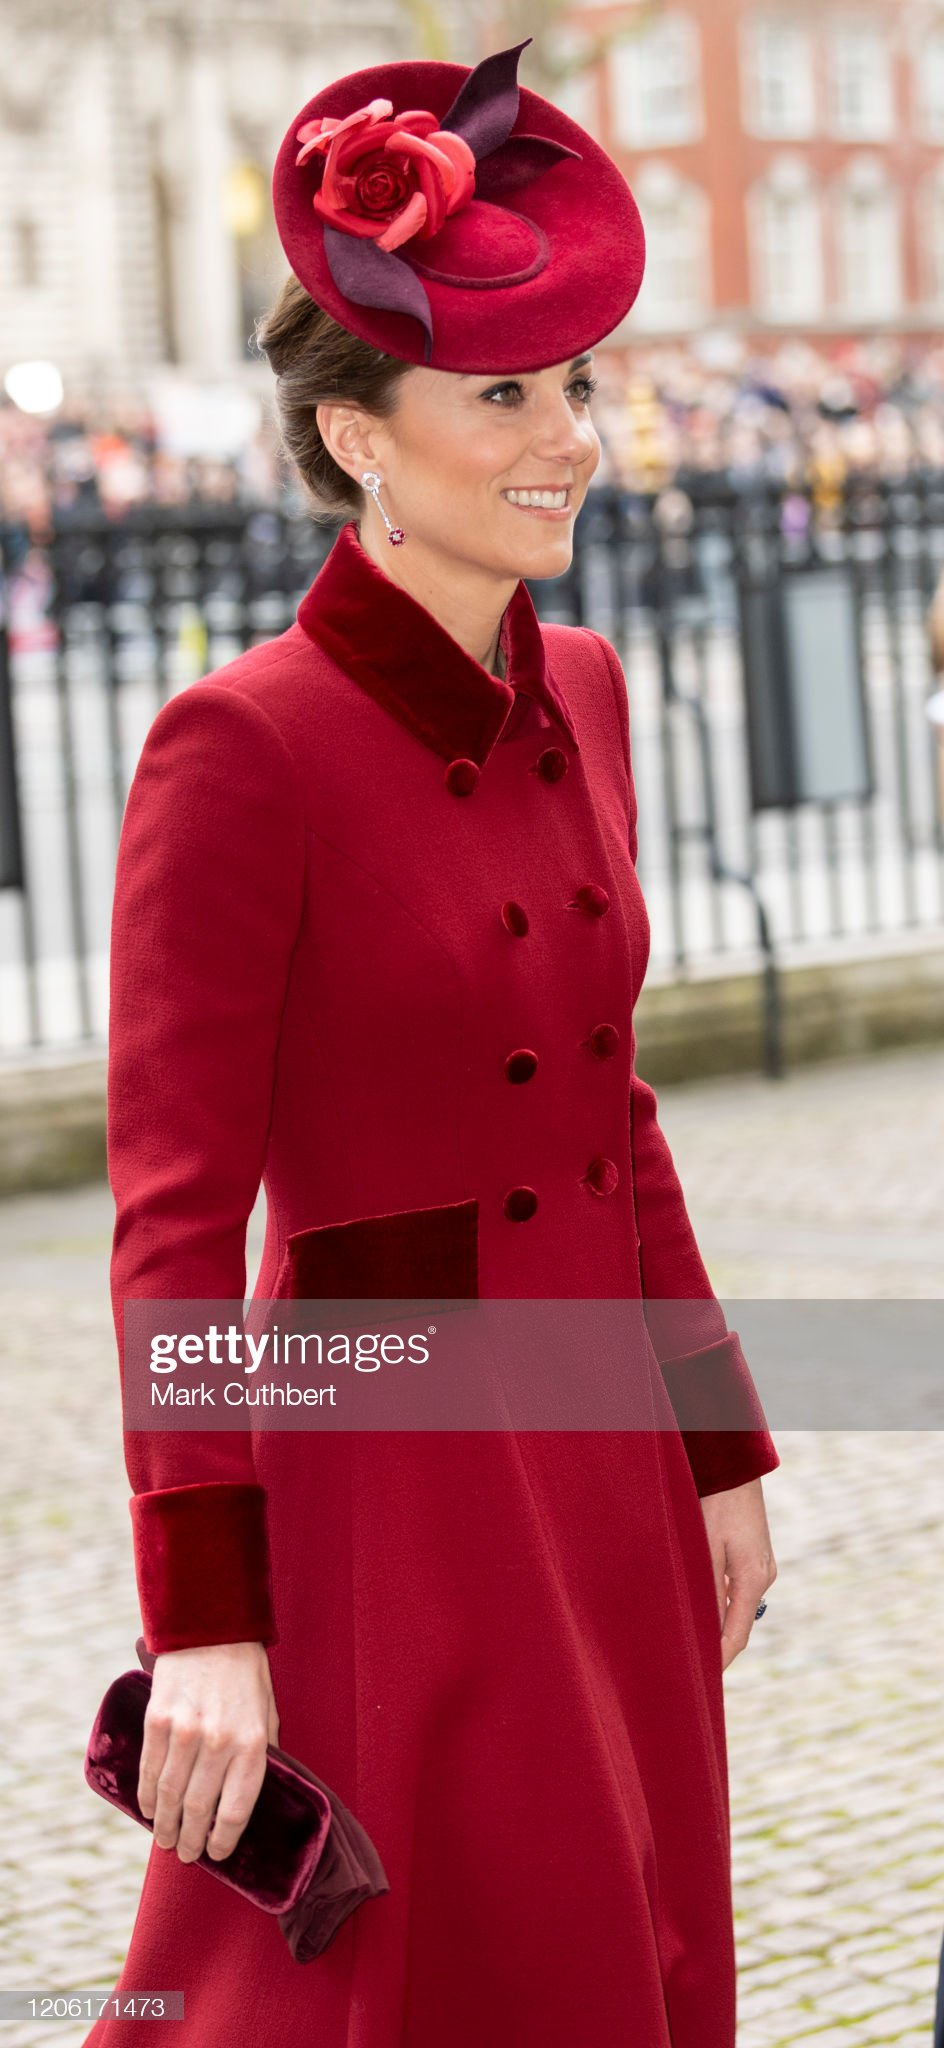 https://media.gettyimages.com/photos/catherine-duchess-of-cambridge-attends-the-commonwealth-day-service-picture-id1206171473?s=2048x2048